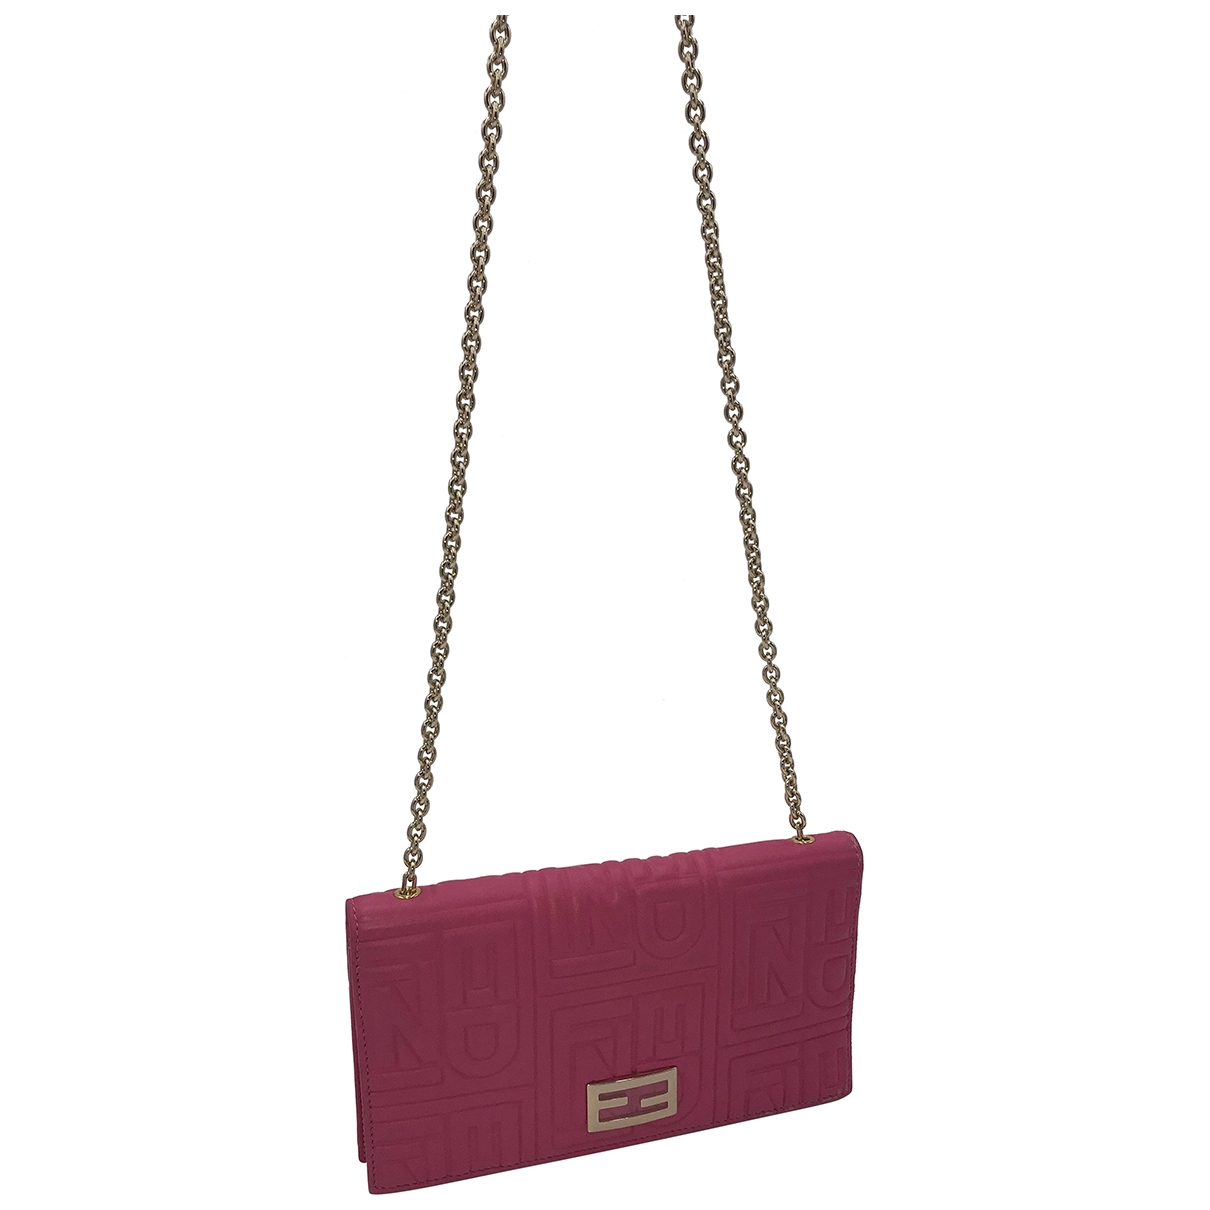 Fendi \N Clutch in  Rosa Leder